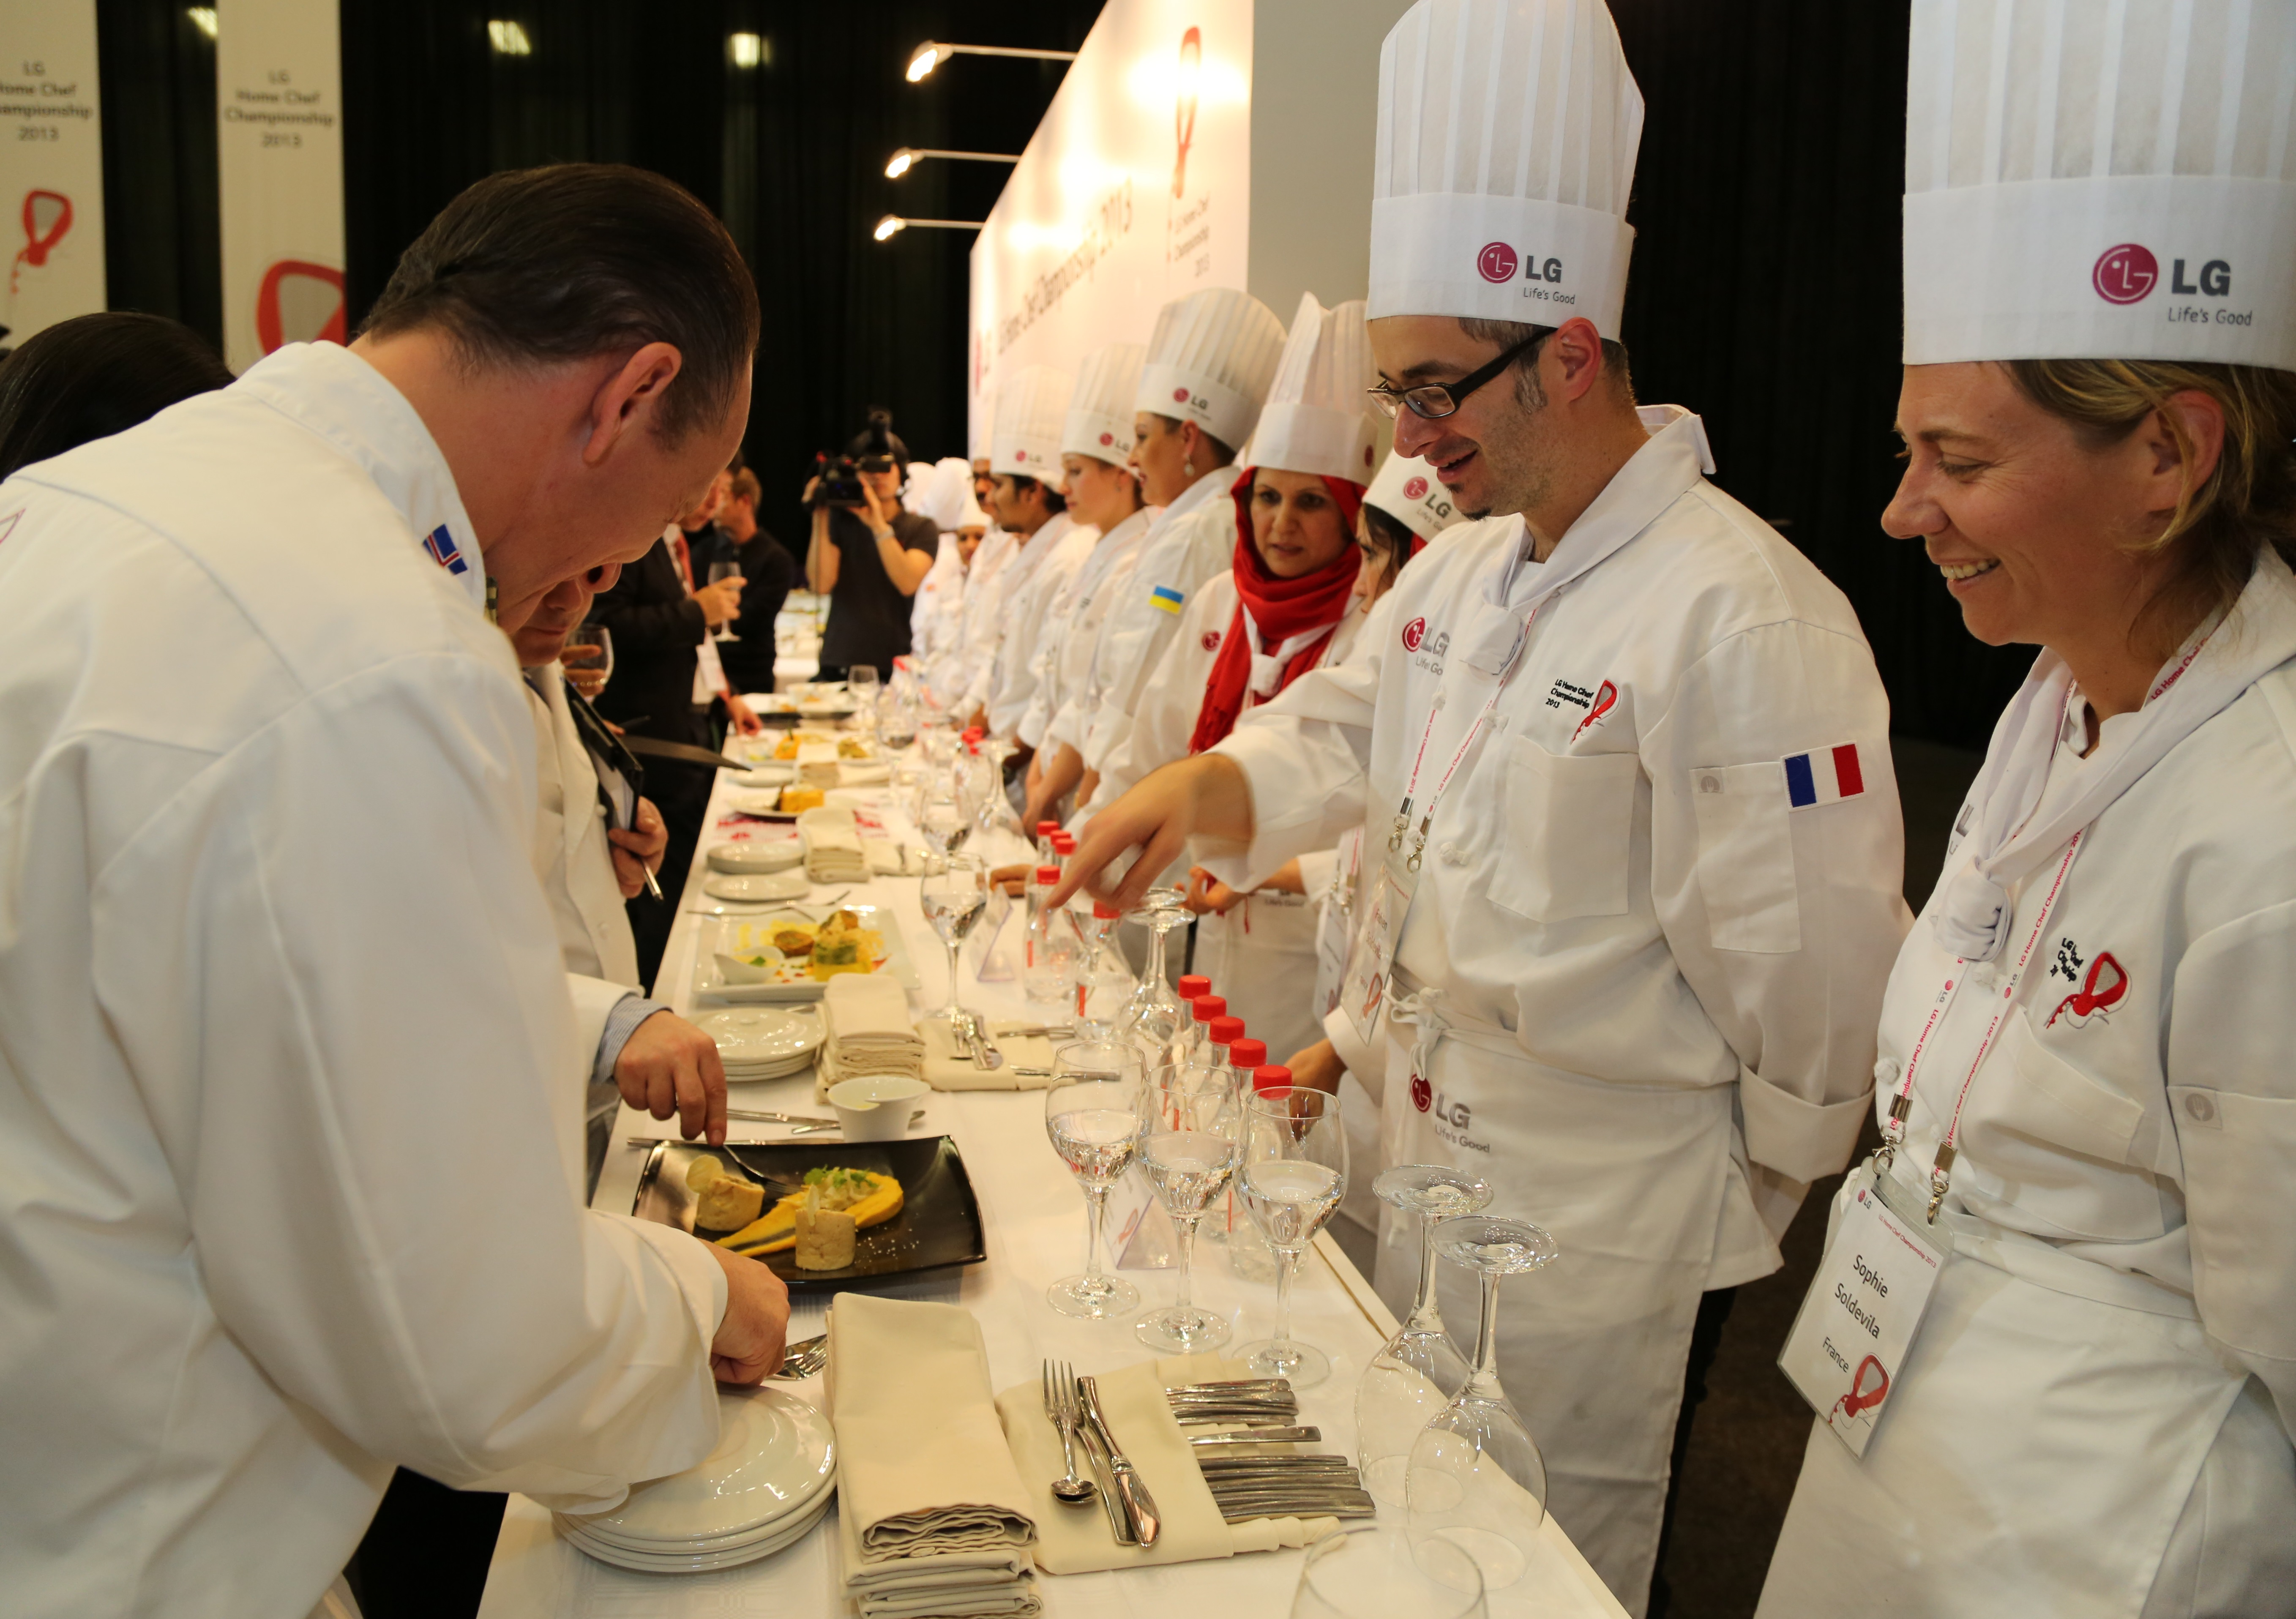 Participating chefs explain their dishes to the judges